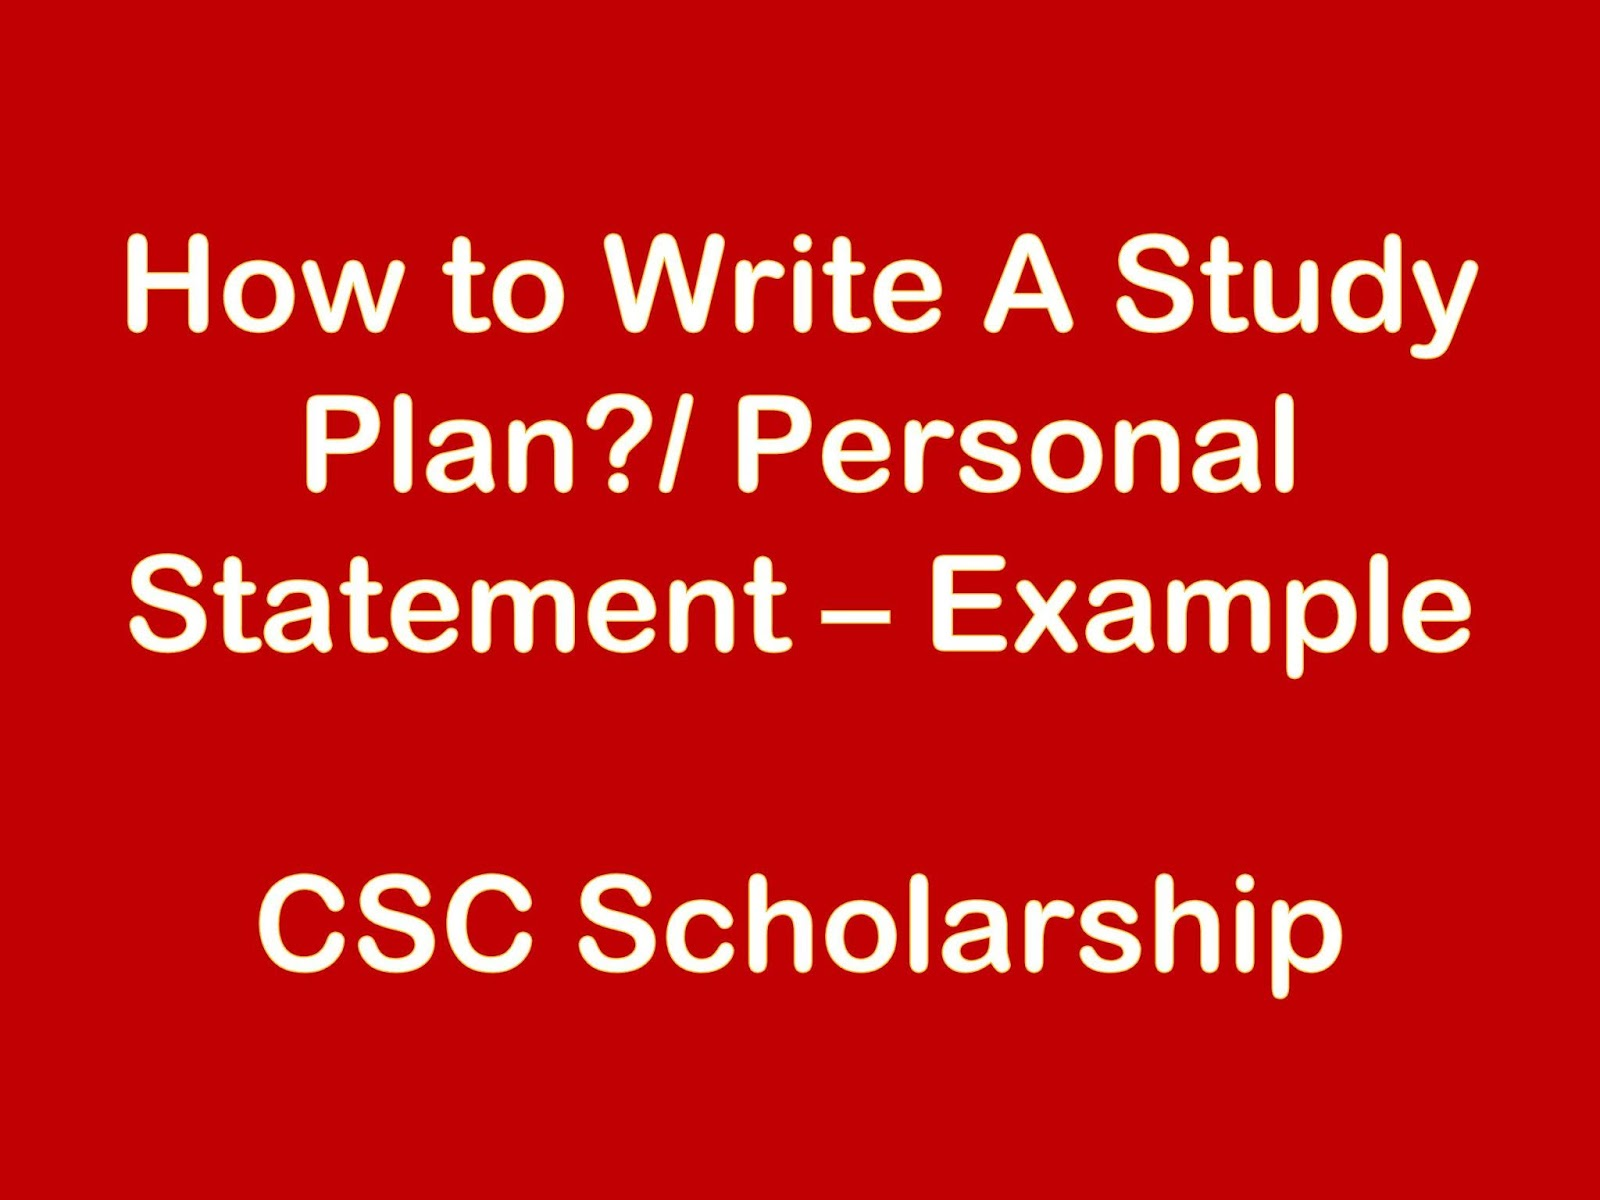 A Study Plan / Personal Statement - Sample for csc scholarship